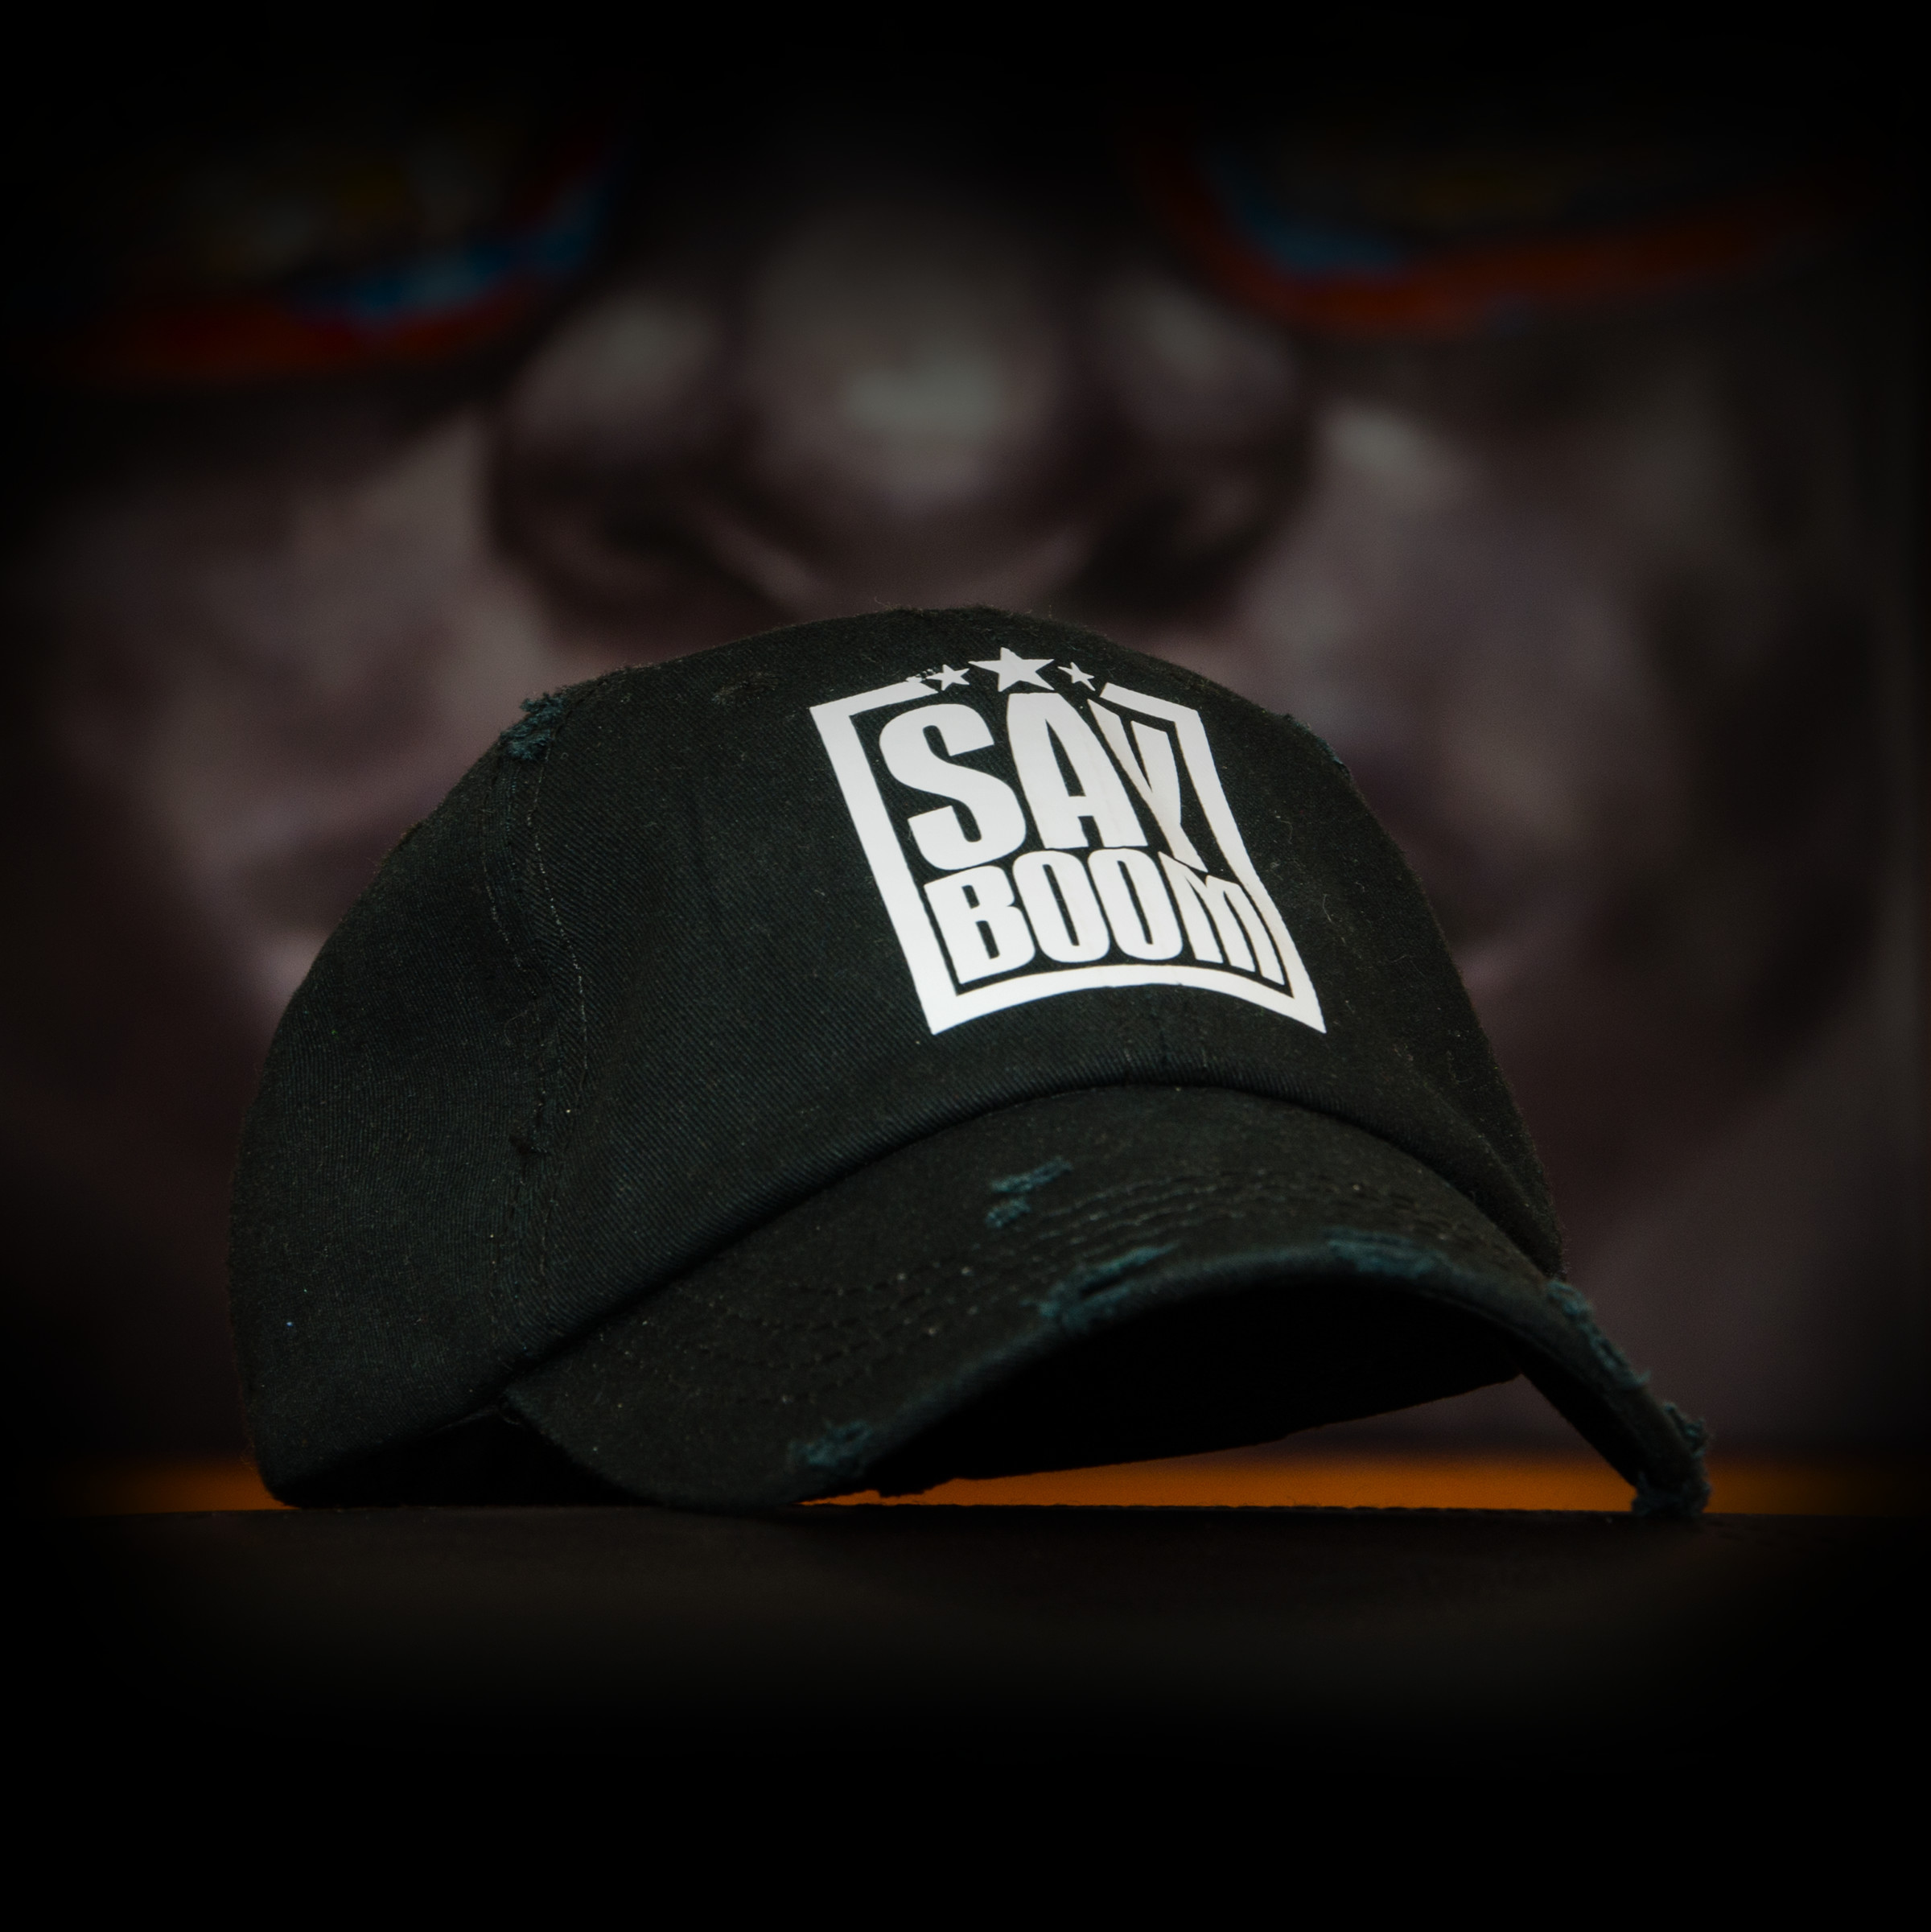 Black SayBoom Cap